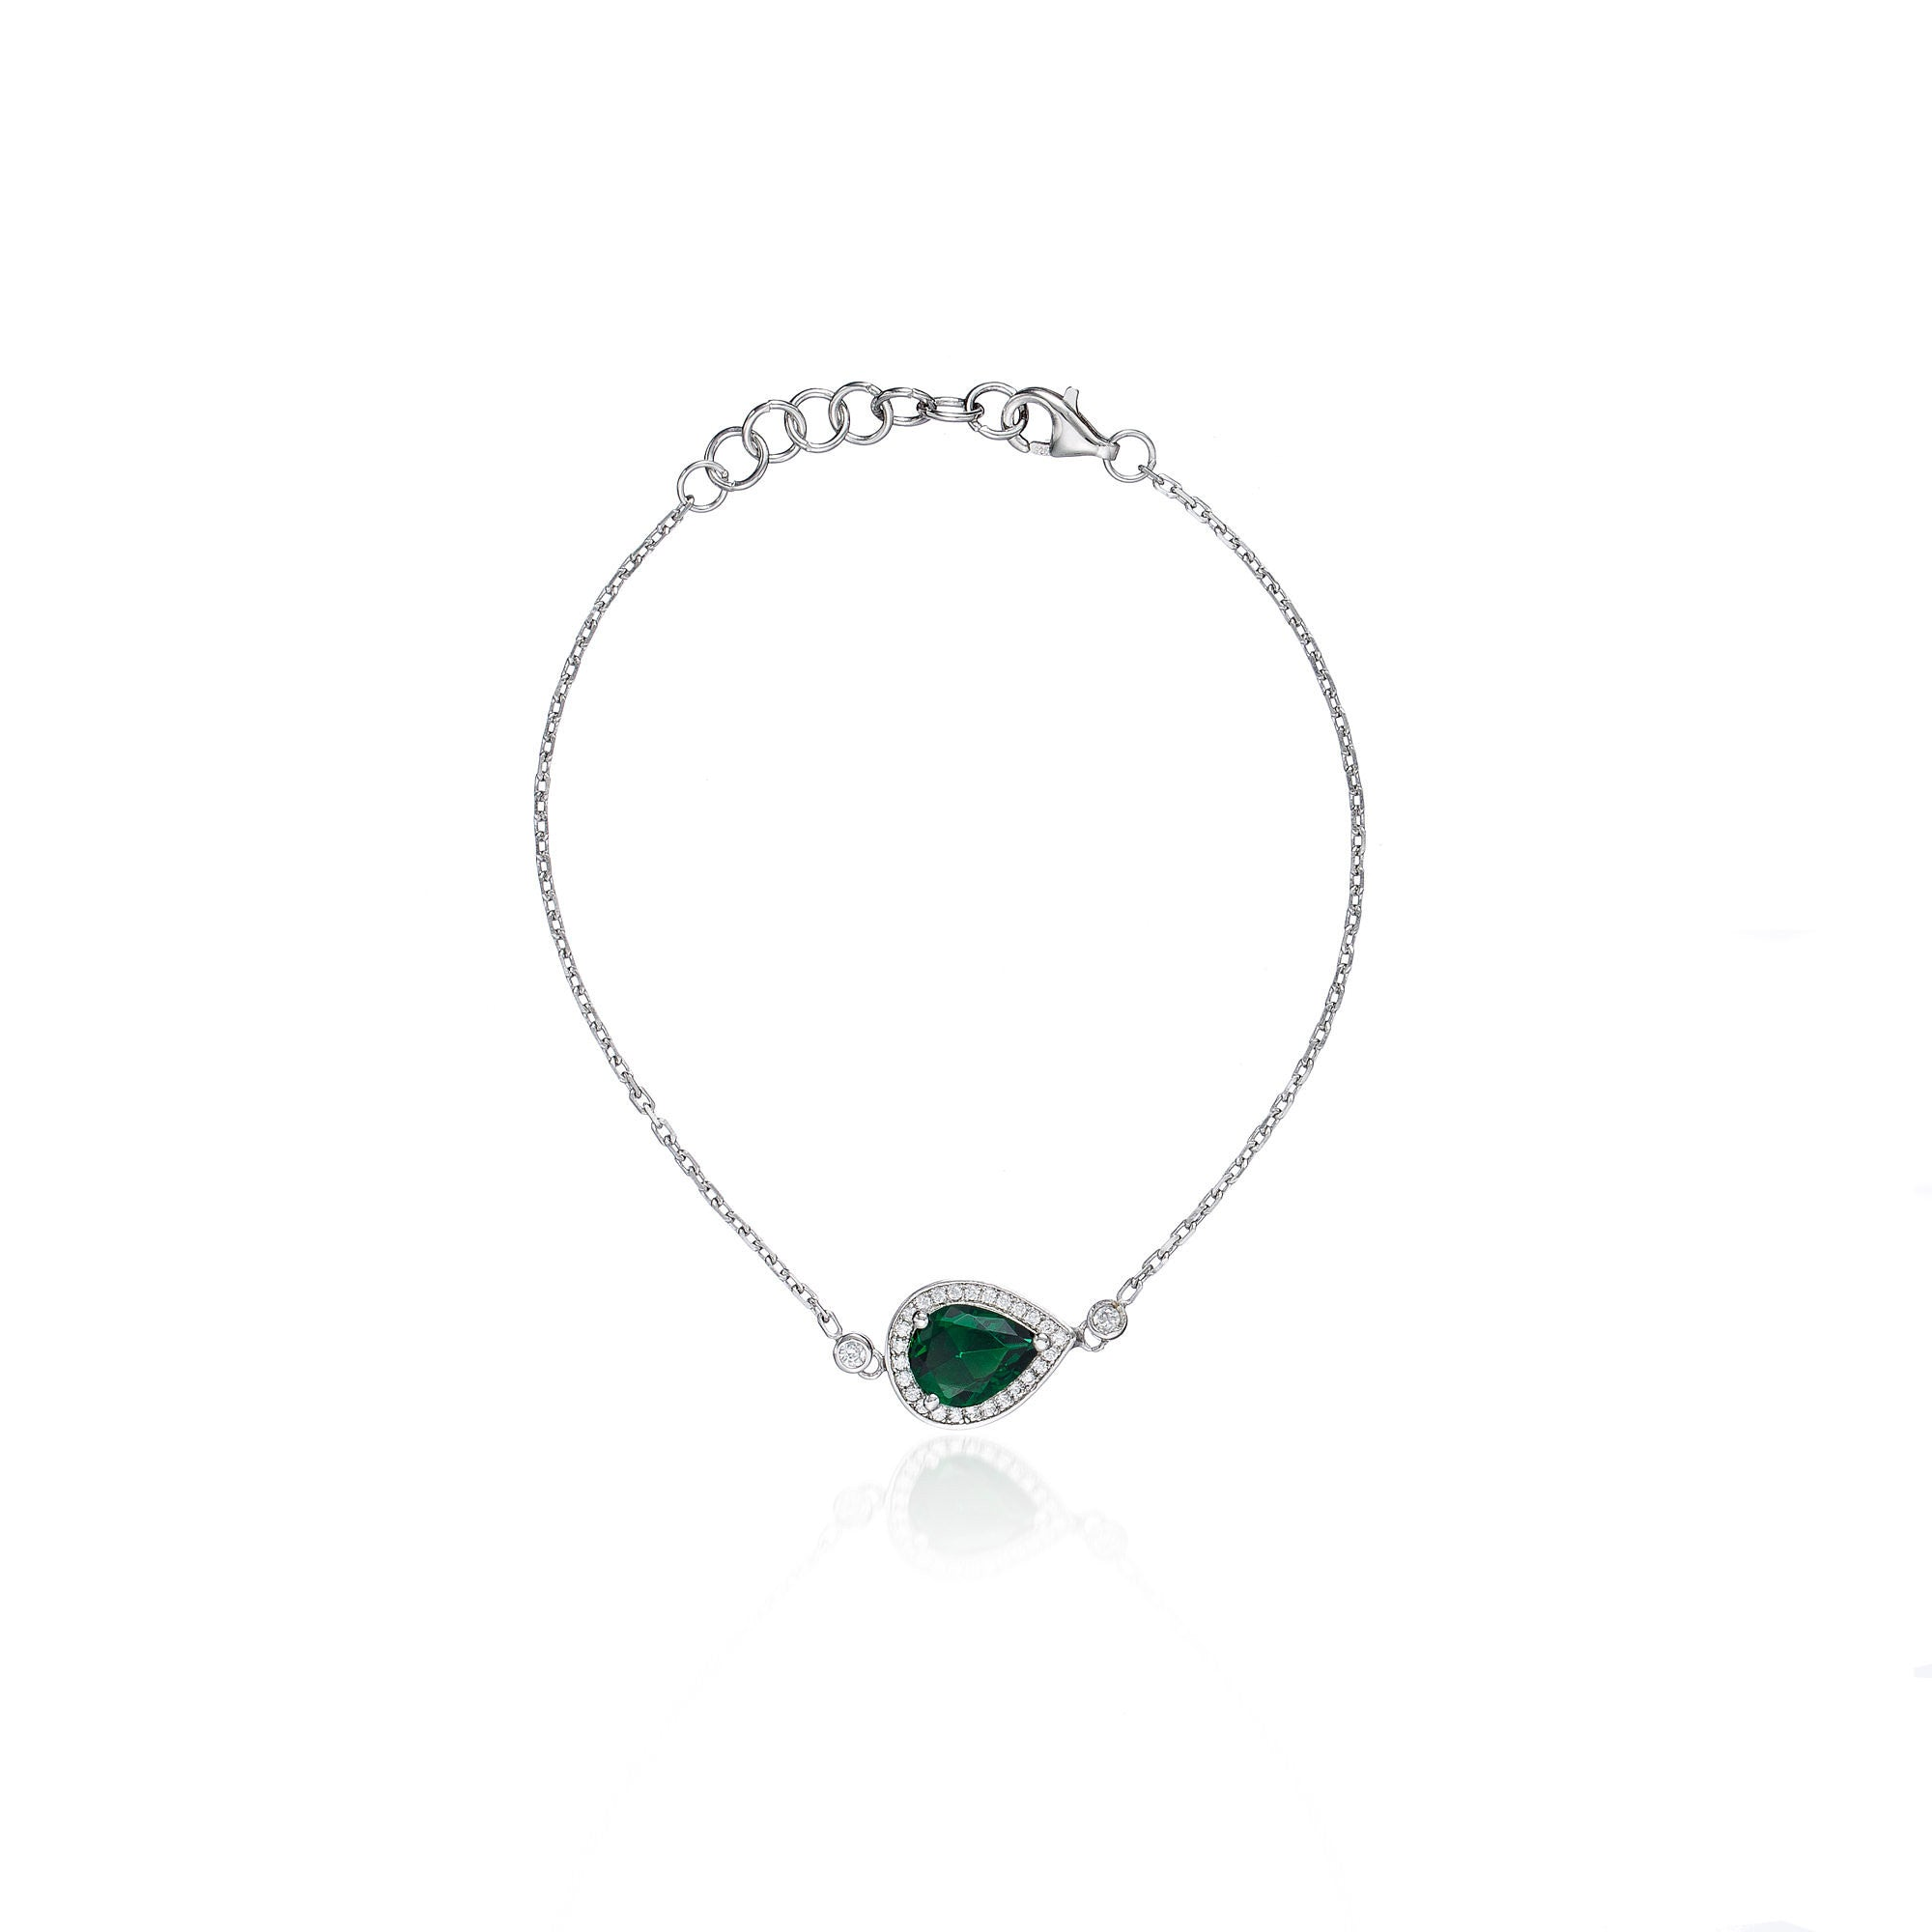 pendant fullxfull il birthstone r stone emerald colombian product solitaire j diamond natural necklace w s jewels